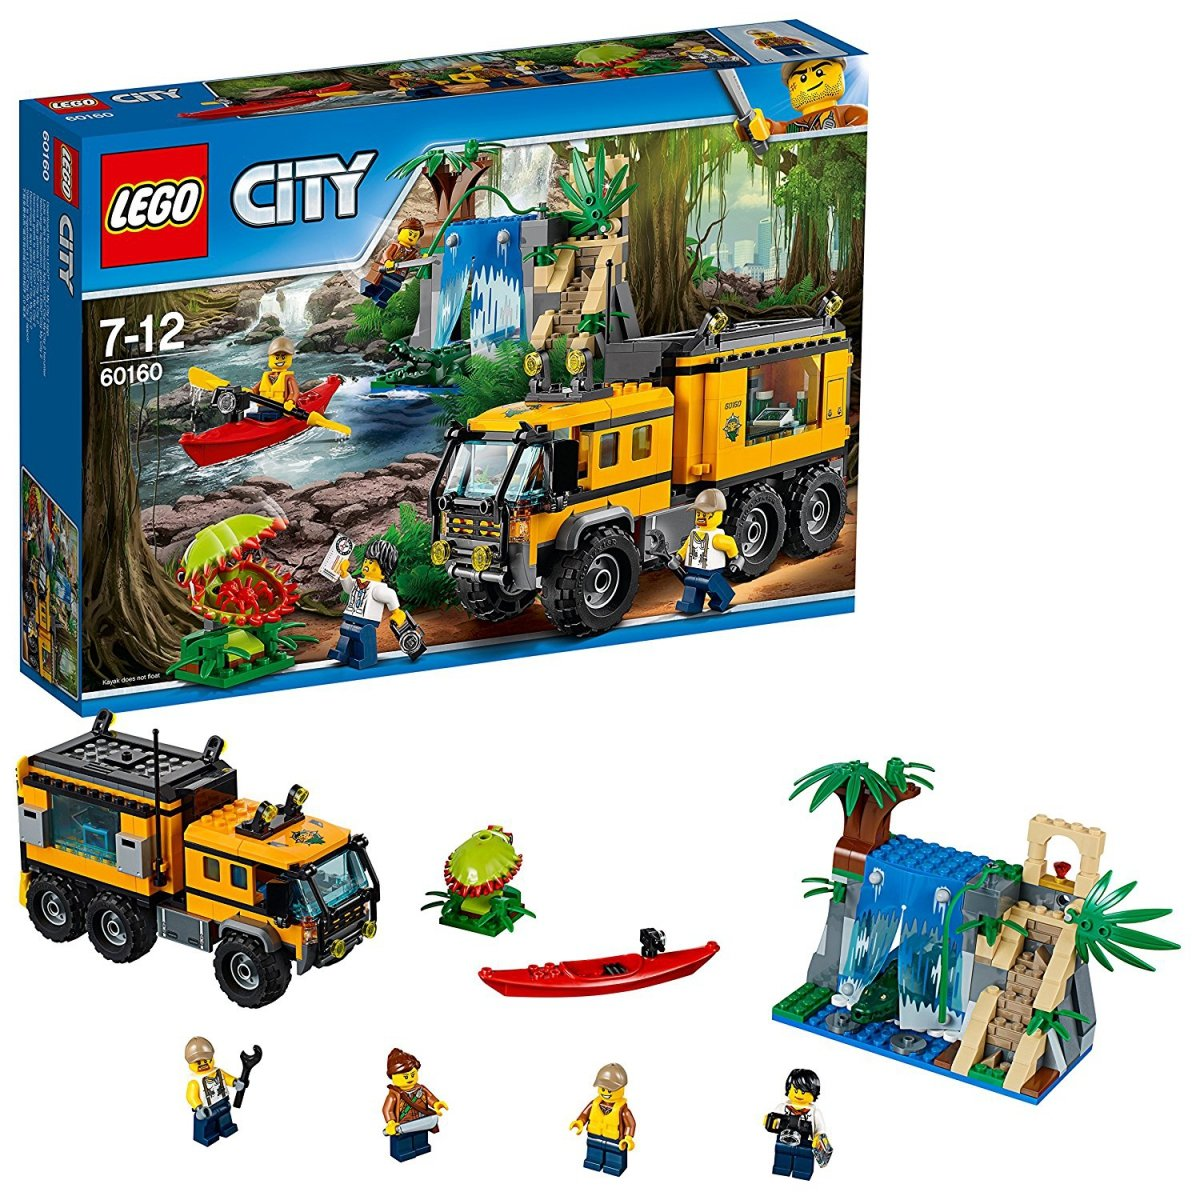 Lego City 60160 Mobilne Laboratorium Dżungla City Lego Klocki